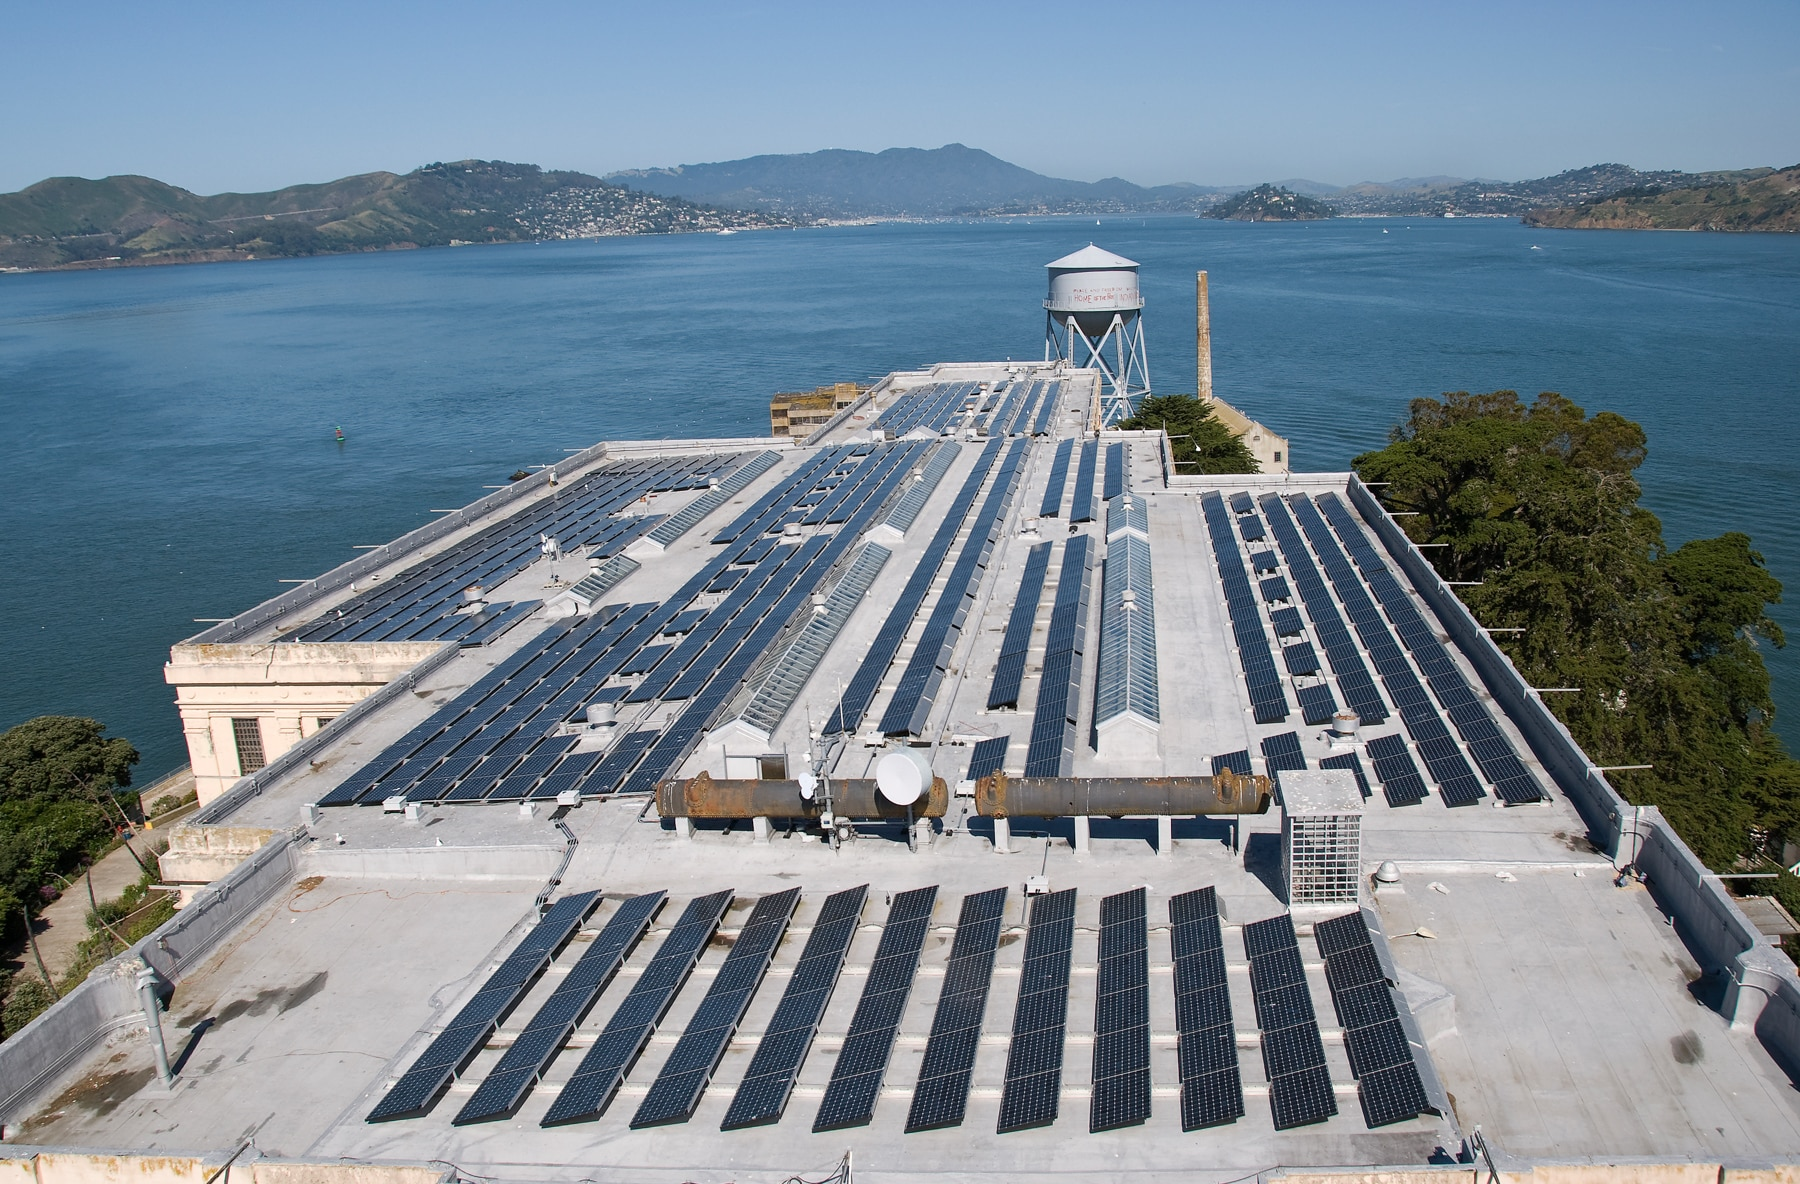 Solar panels on top of Alcatraz prison (National Park Service/Al Greening)